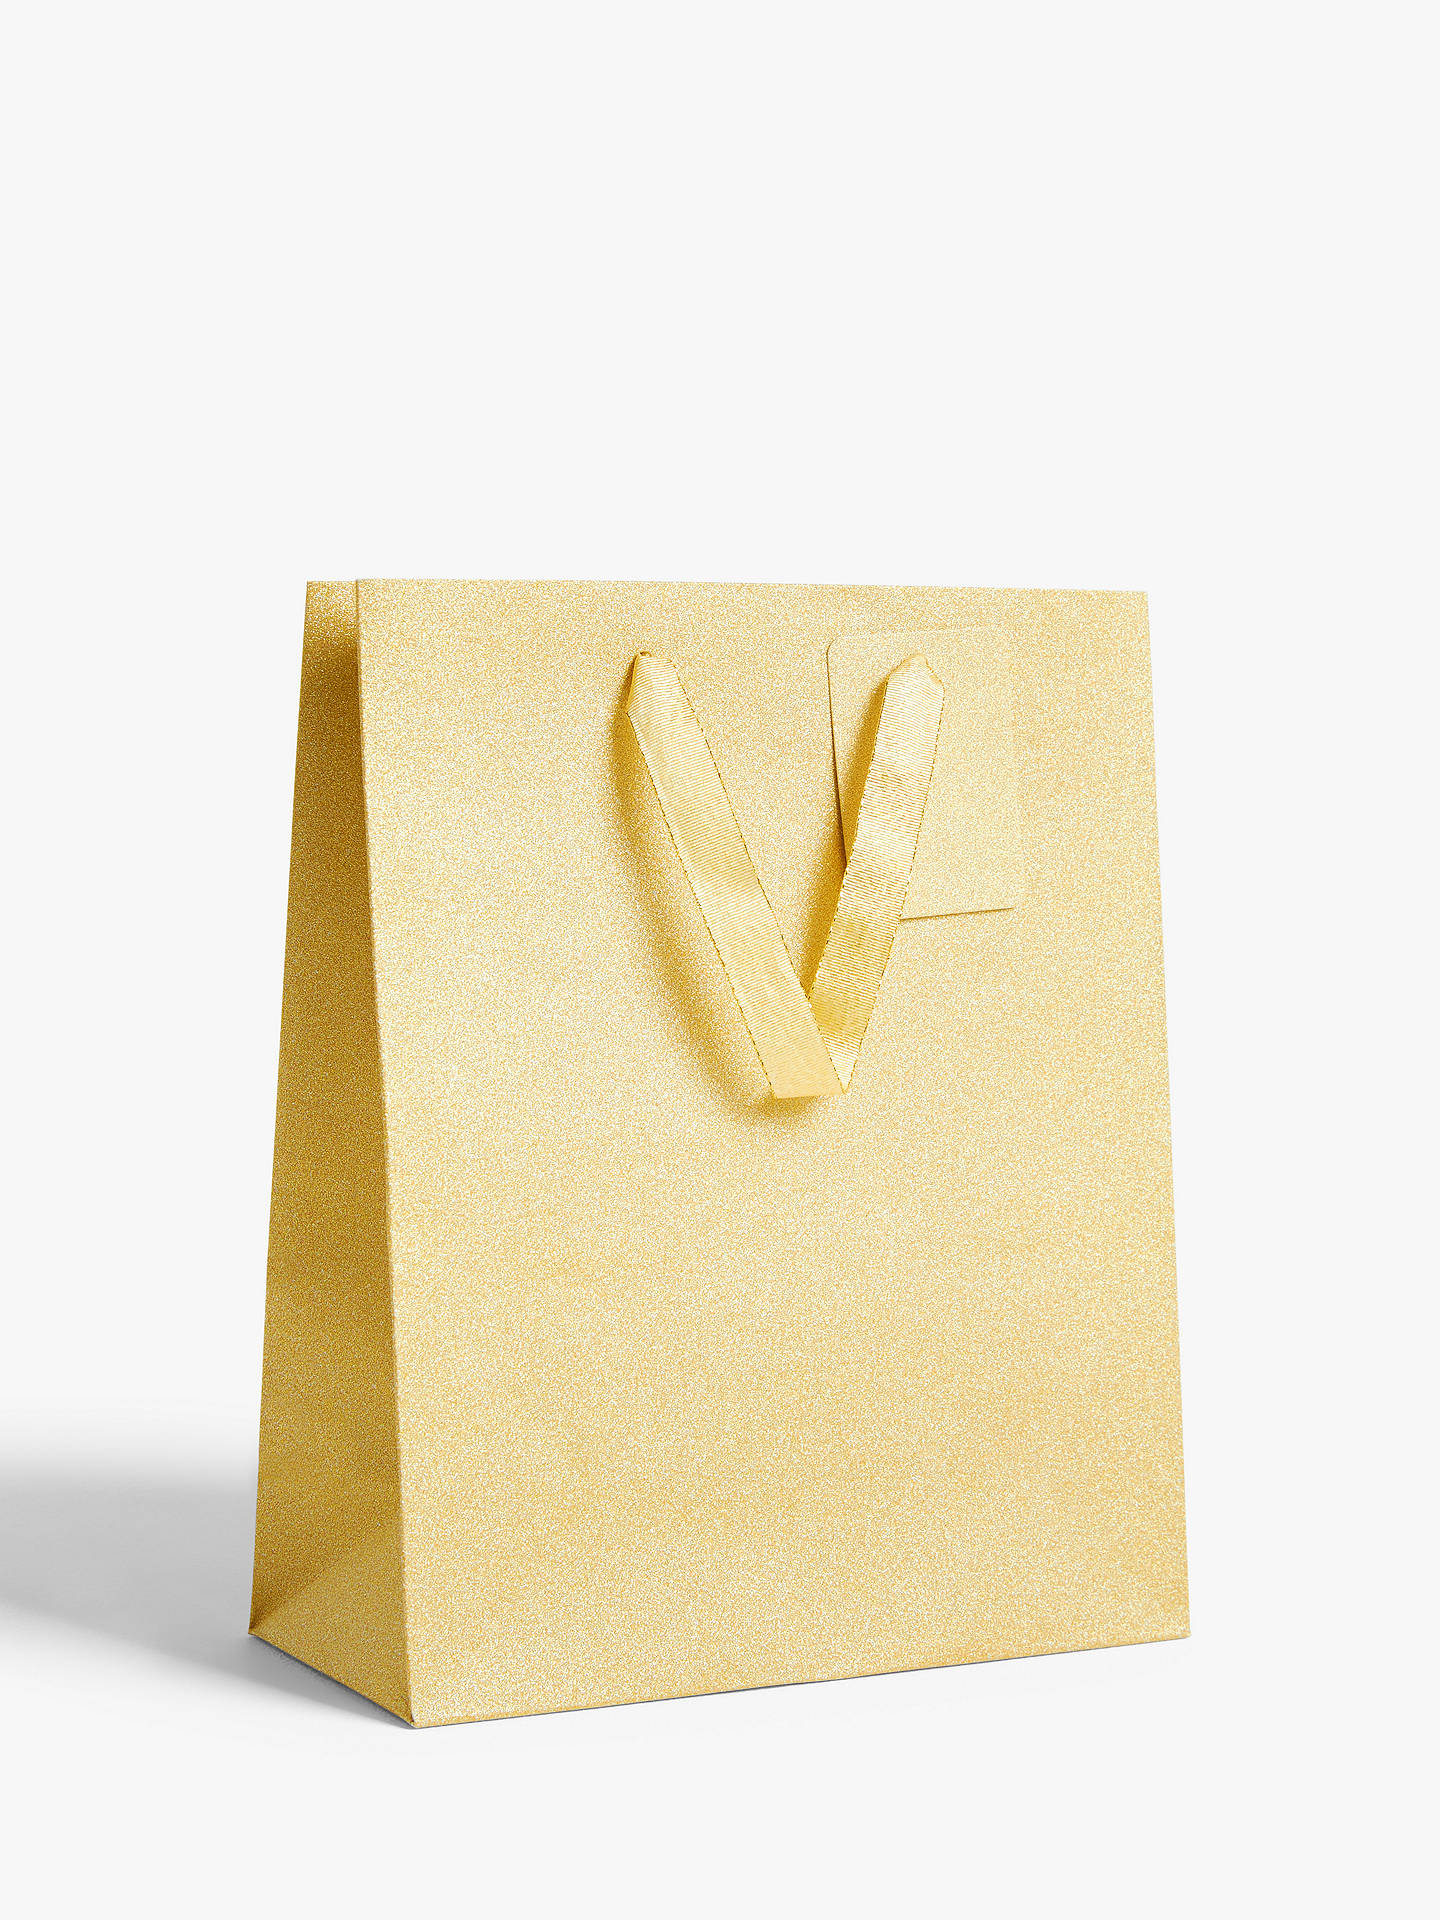 BuyJohn Lewis & Partners Encapsulated Gold Gift Bag, Small Online at johnlewis.com